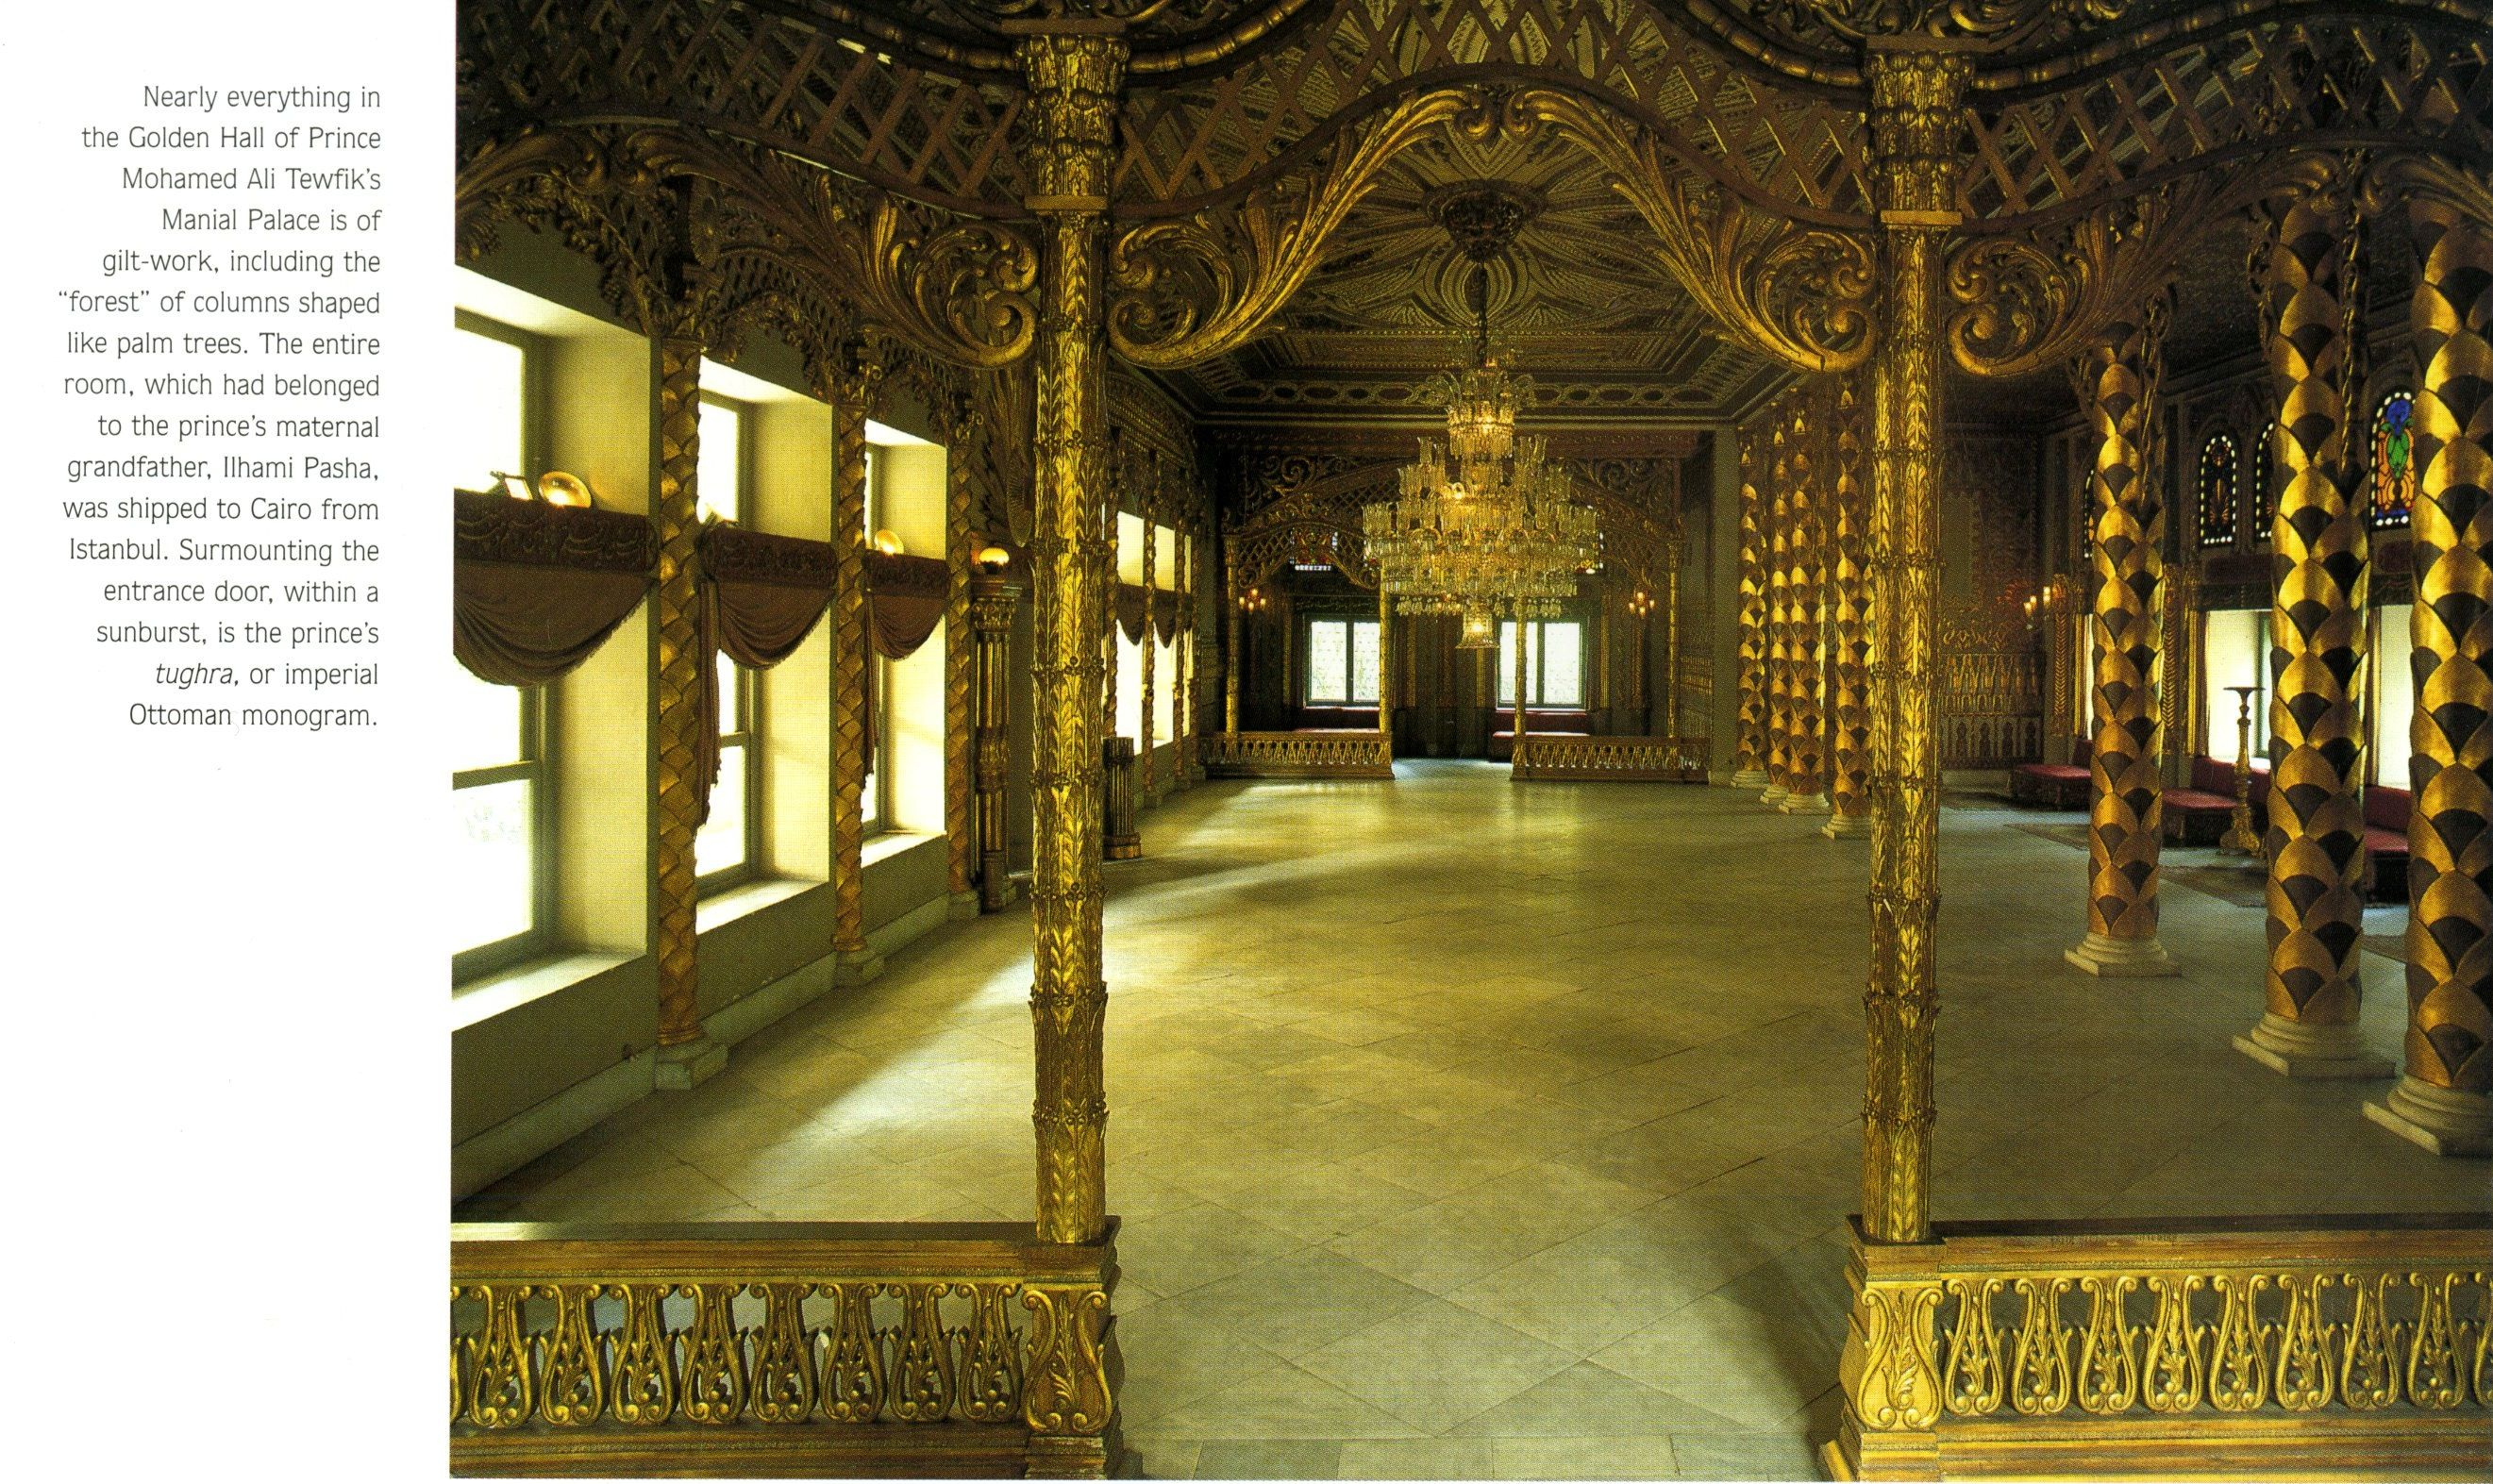 Golden Hall Of Prince Mohamed Ali Tewfik Manial Palace